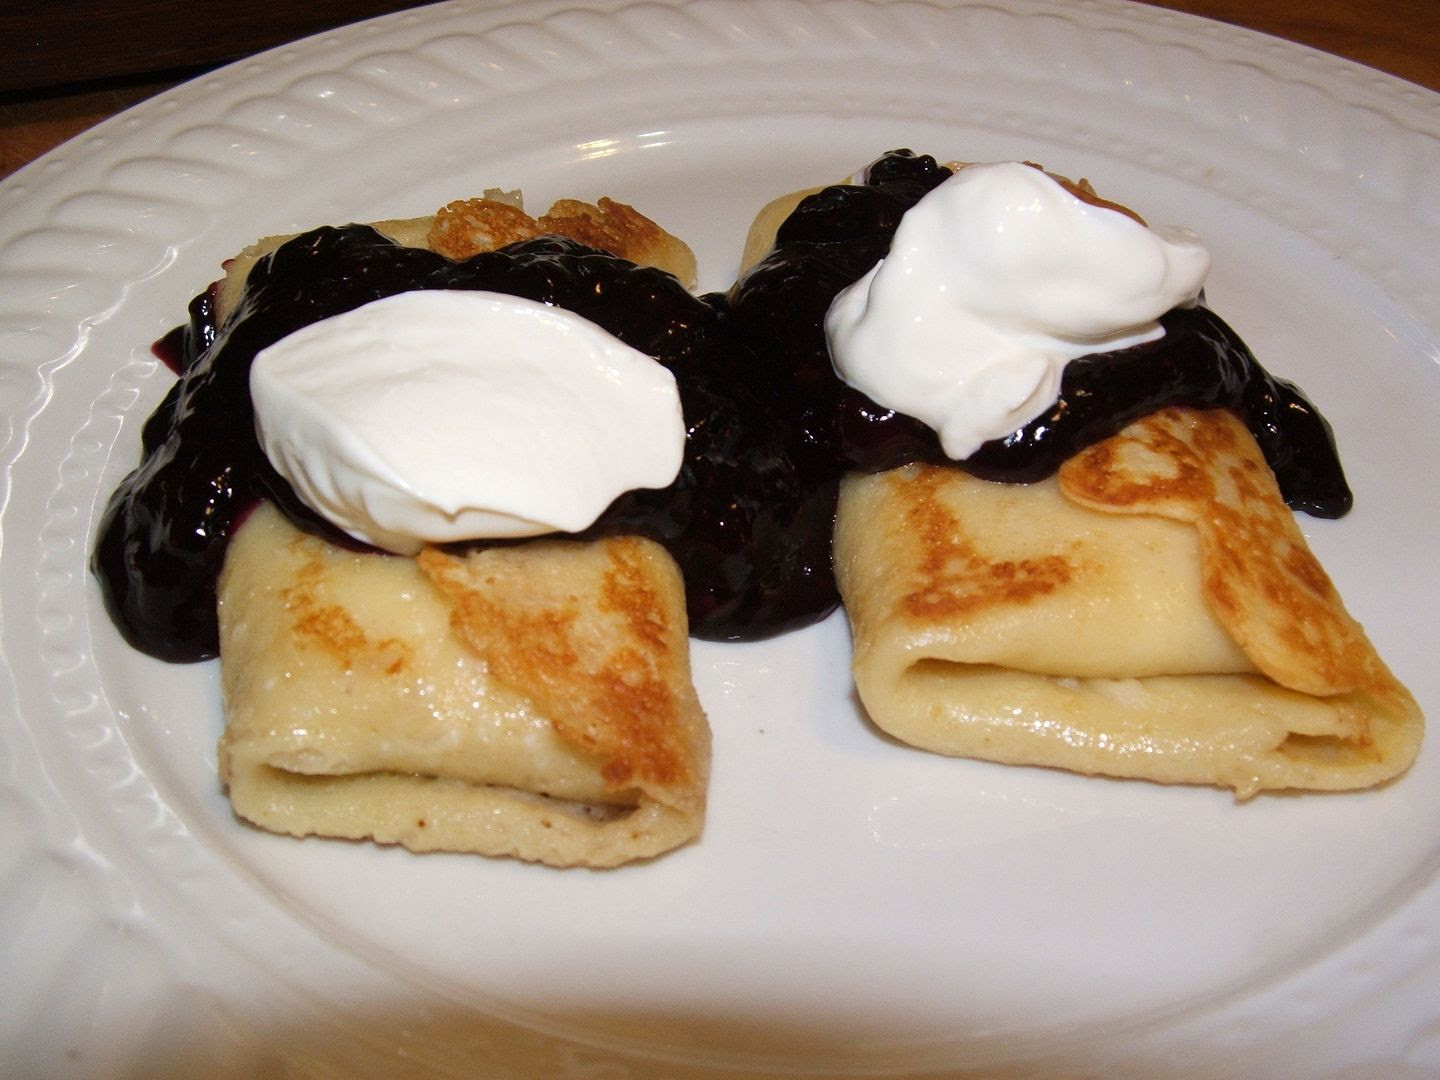 Bueberry Blintz, by Angie Ouellette-Tower for godsgrowinggarden.com